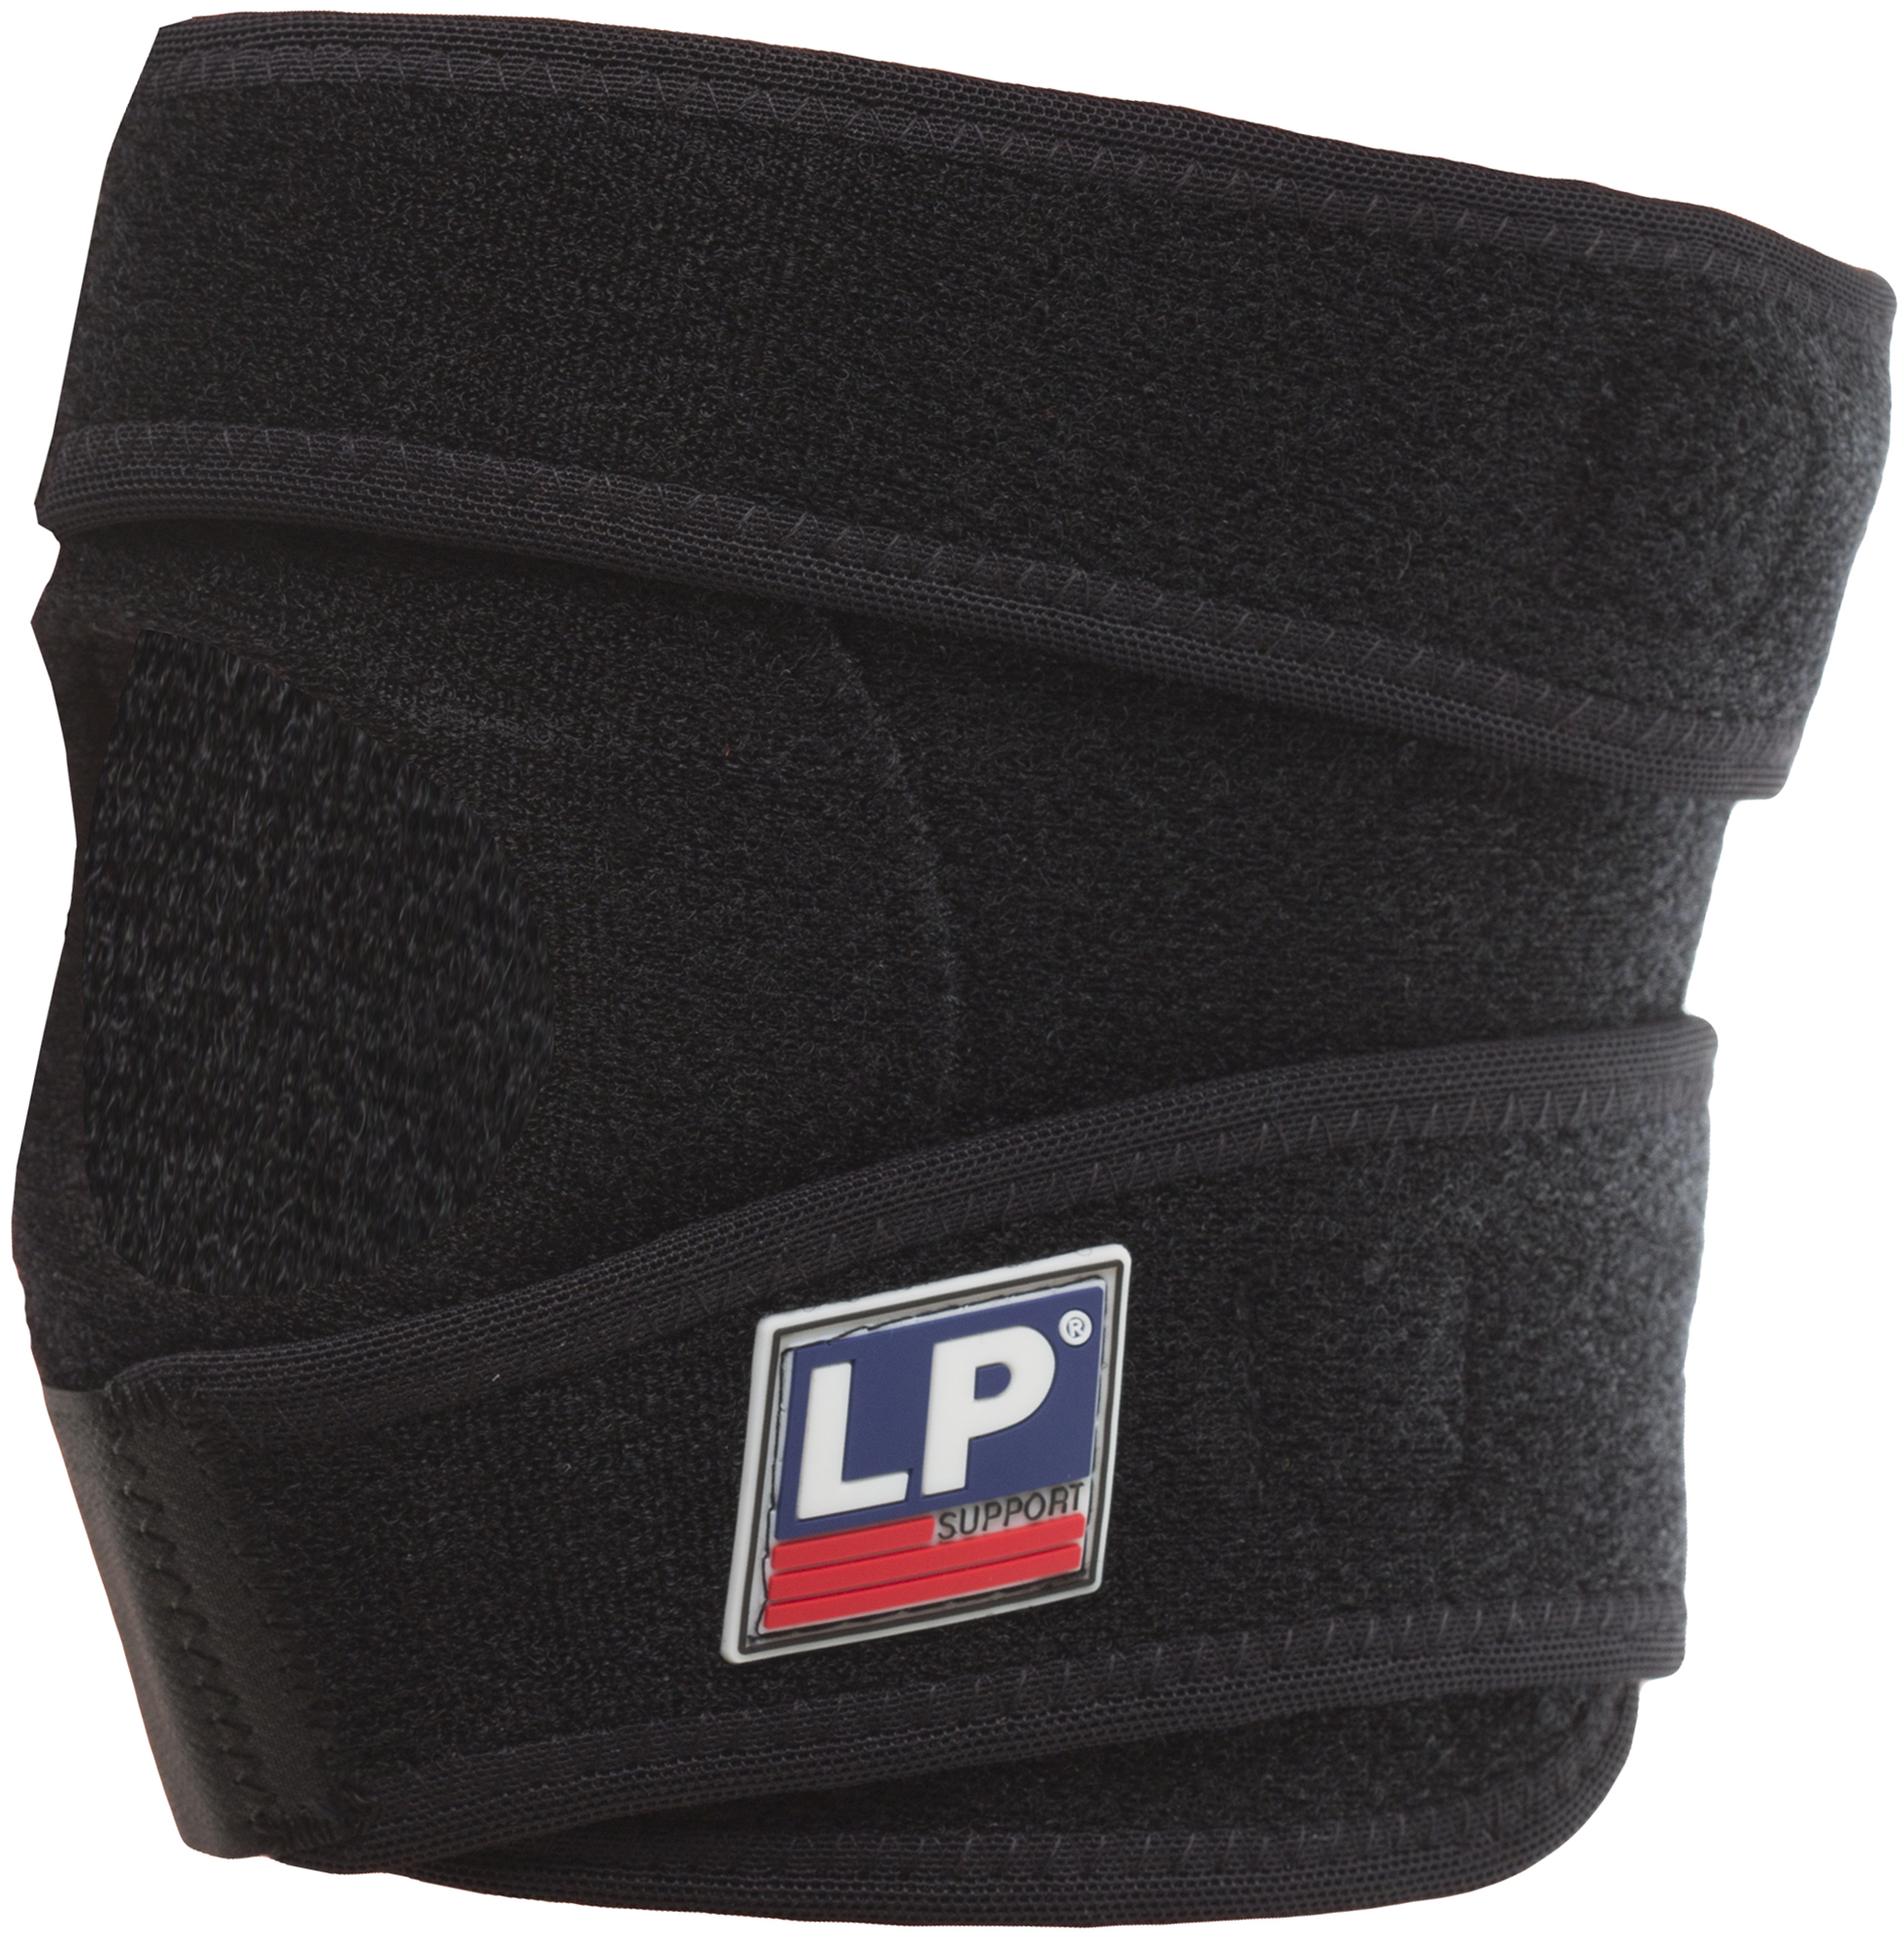 LP Support Суппорт колена LP Extreme fingerband lp 769 lp769